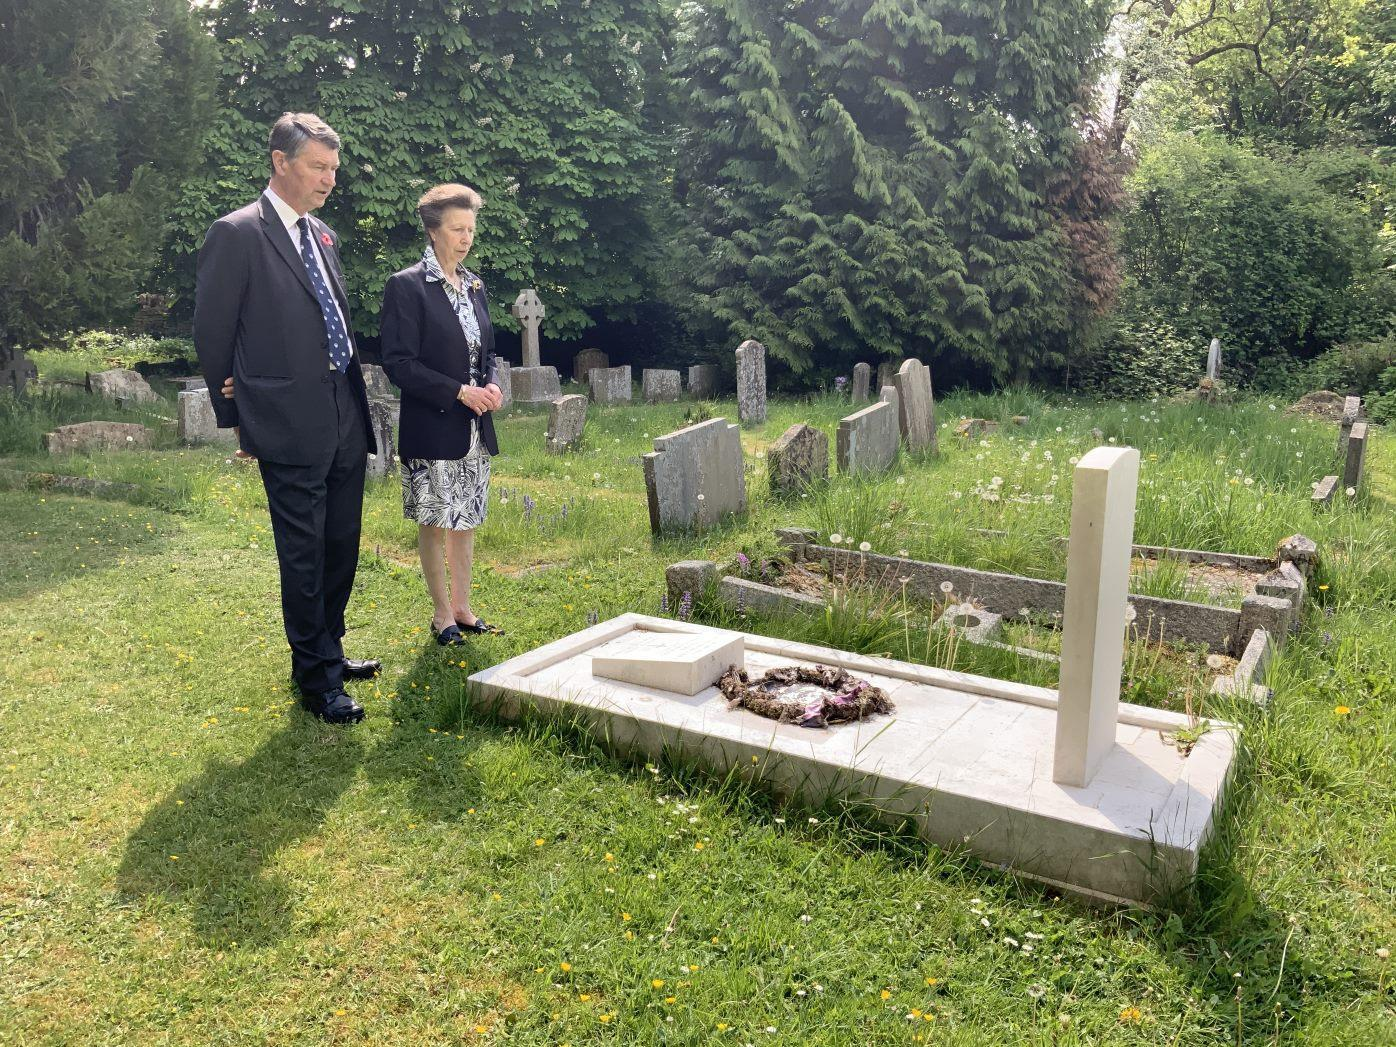 The Princess Royal and Admiral Sir Tim Laurence visit the grave of the Founder of the CWGC on VE Day